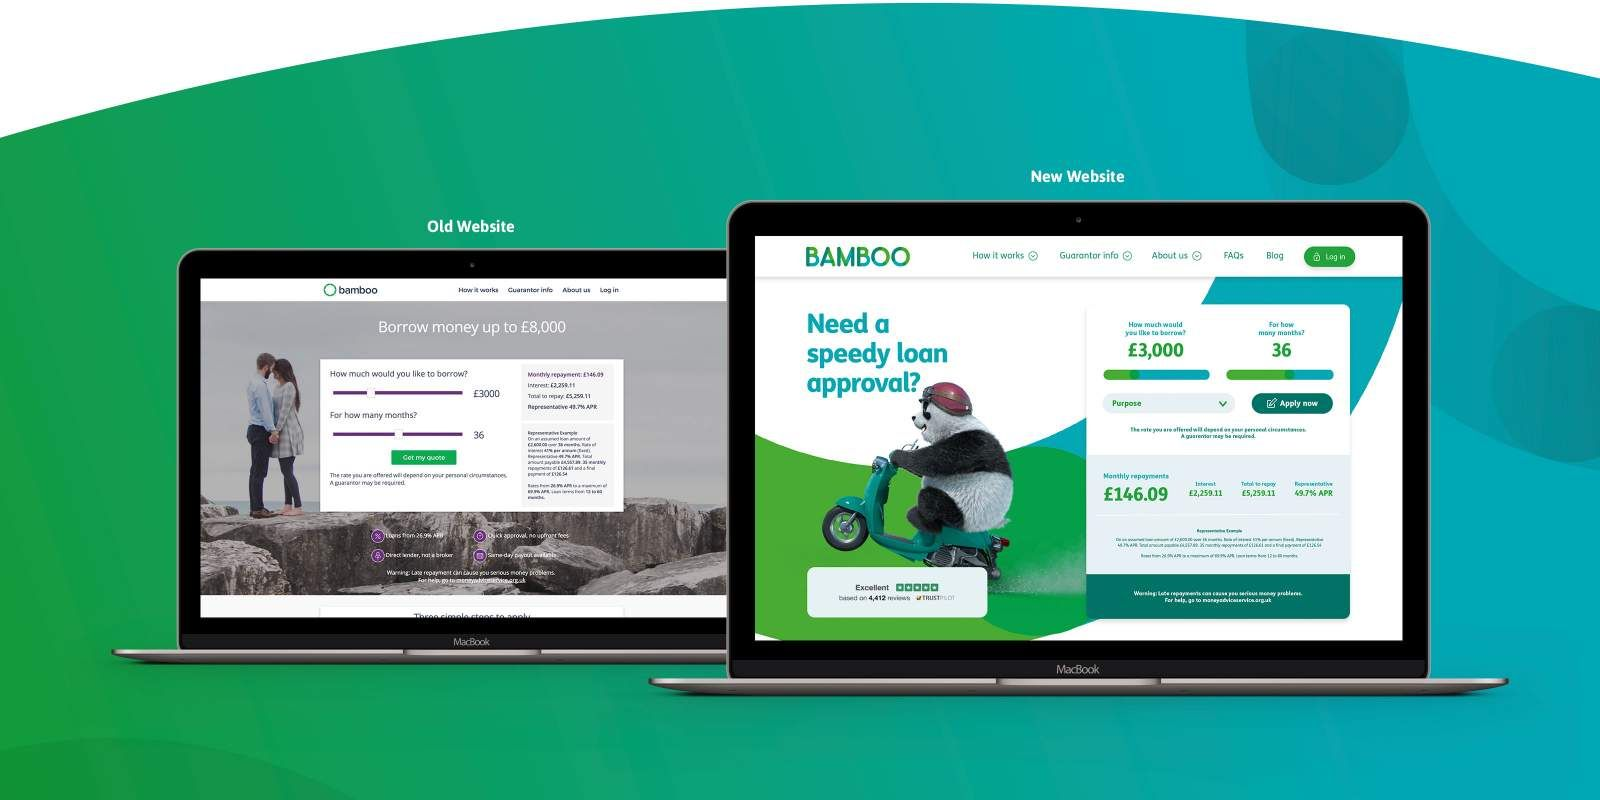 Bamboo old website vs new website